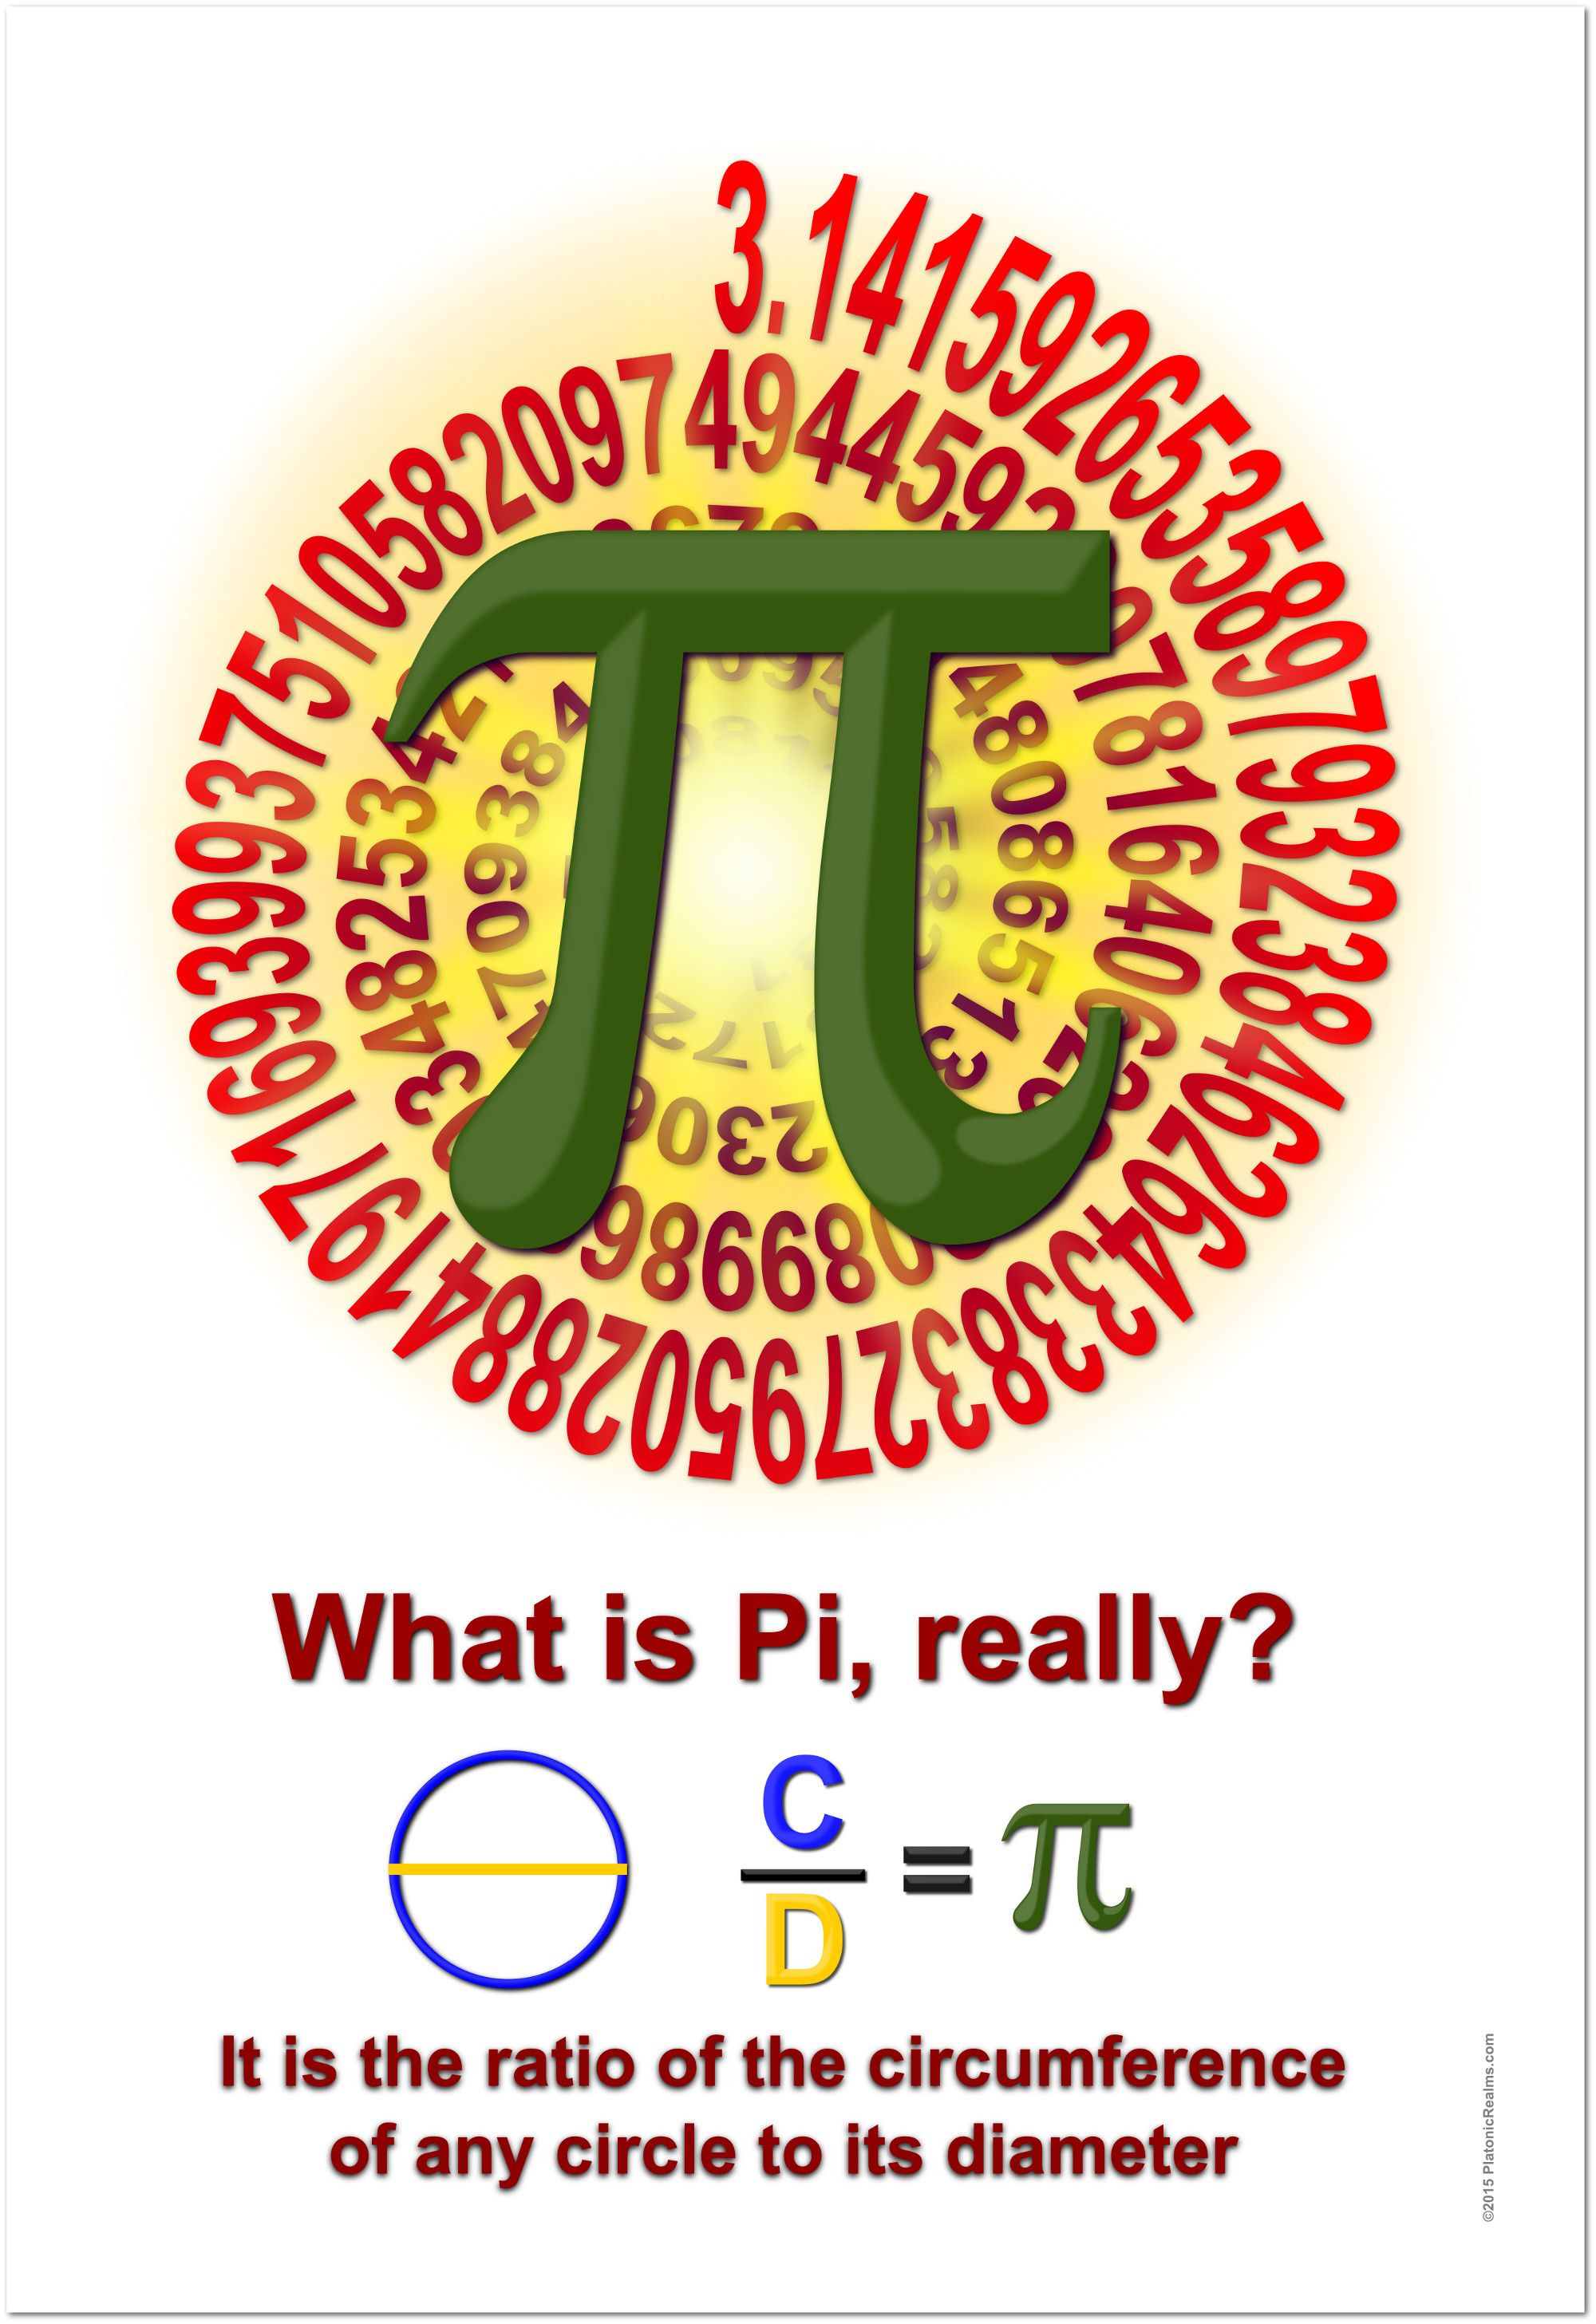 Pi The Definition Classroom Math Poster Etsy In 2021 Math Classroom Math Poster Classroom Posters [ 2913 x 2000 Pixel ]